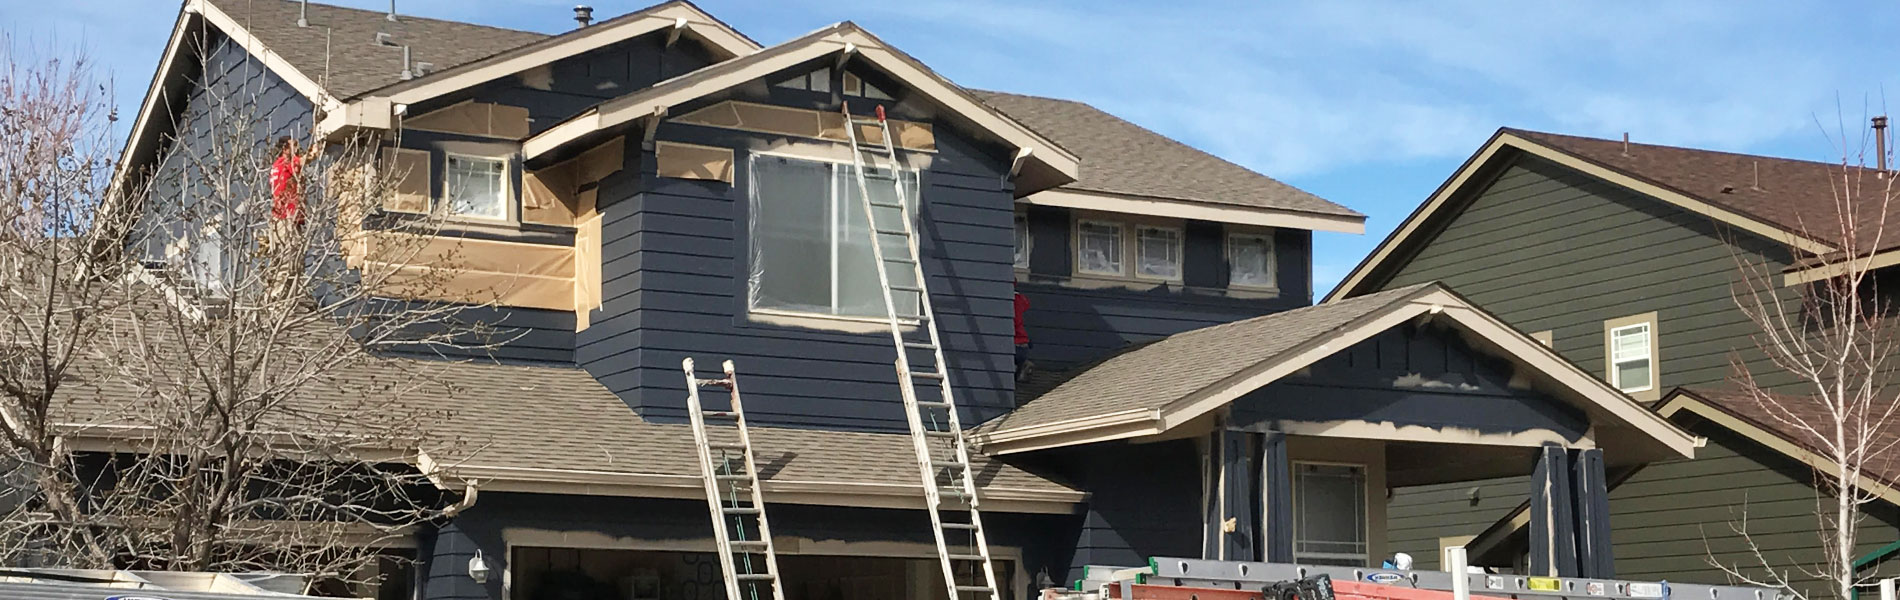 Hail Amp Storm Damage Repair In Aurora Co Roofing Company